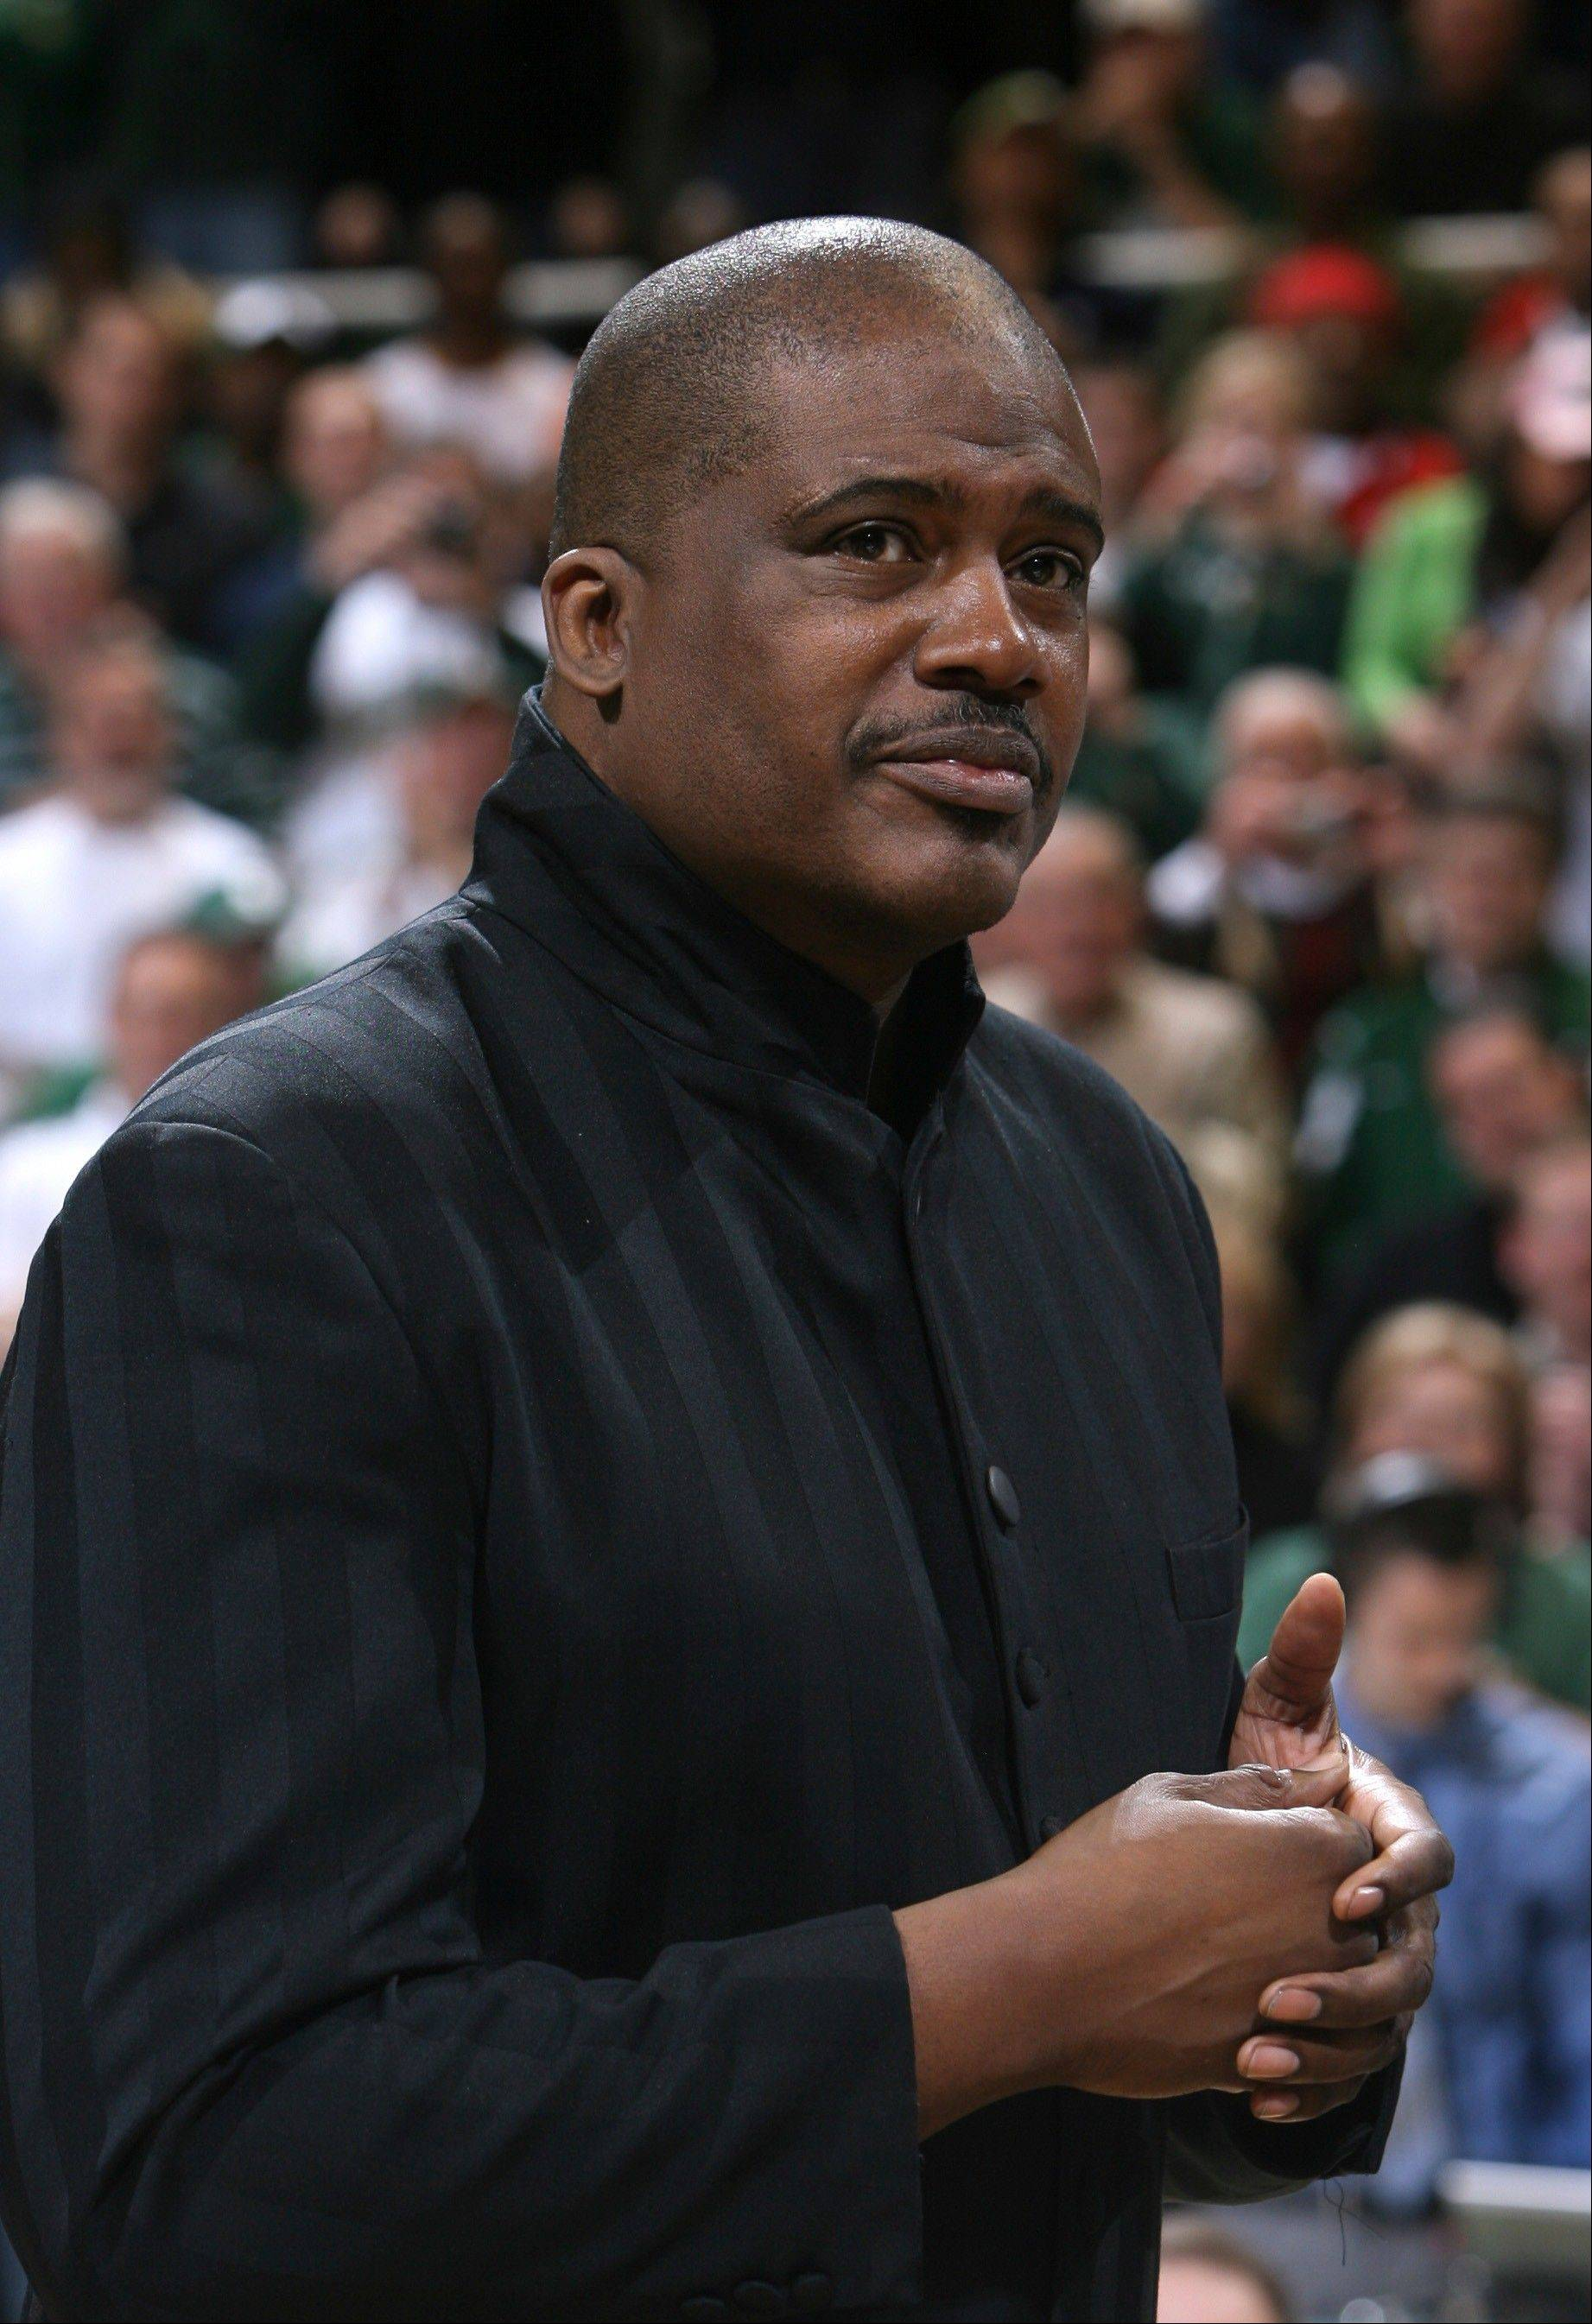 Jay Vincent is shown as he joins members of Michigan State�s 1979 NCAA championship basketball team during a ceremony commemorating the 30th anniversary of the championship during halftime of an NCAA college basketball game between Michigan State and Wisconsin, in East Lansing, Mich. Former NBA star Magic Johnson is asking a judge for �mercy� and no prison for college teammate Vincent, who is facing years behind bars for fraud.